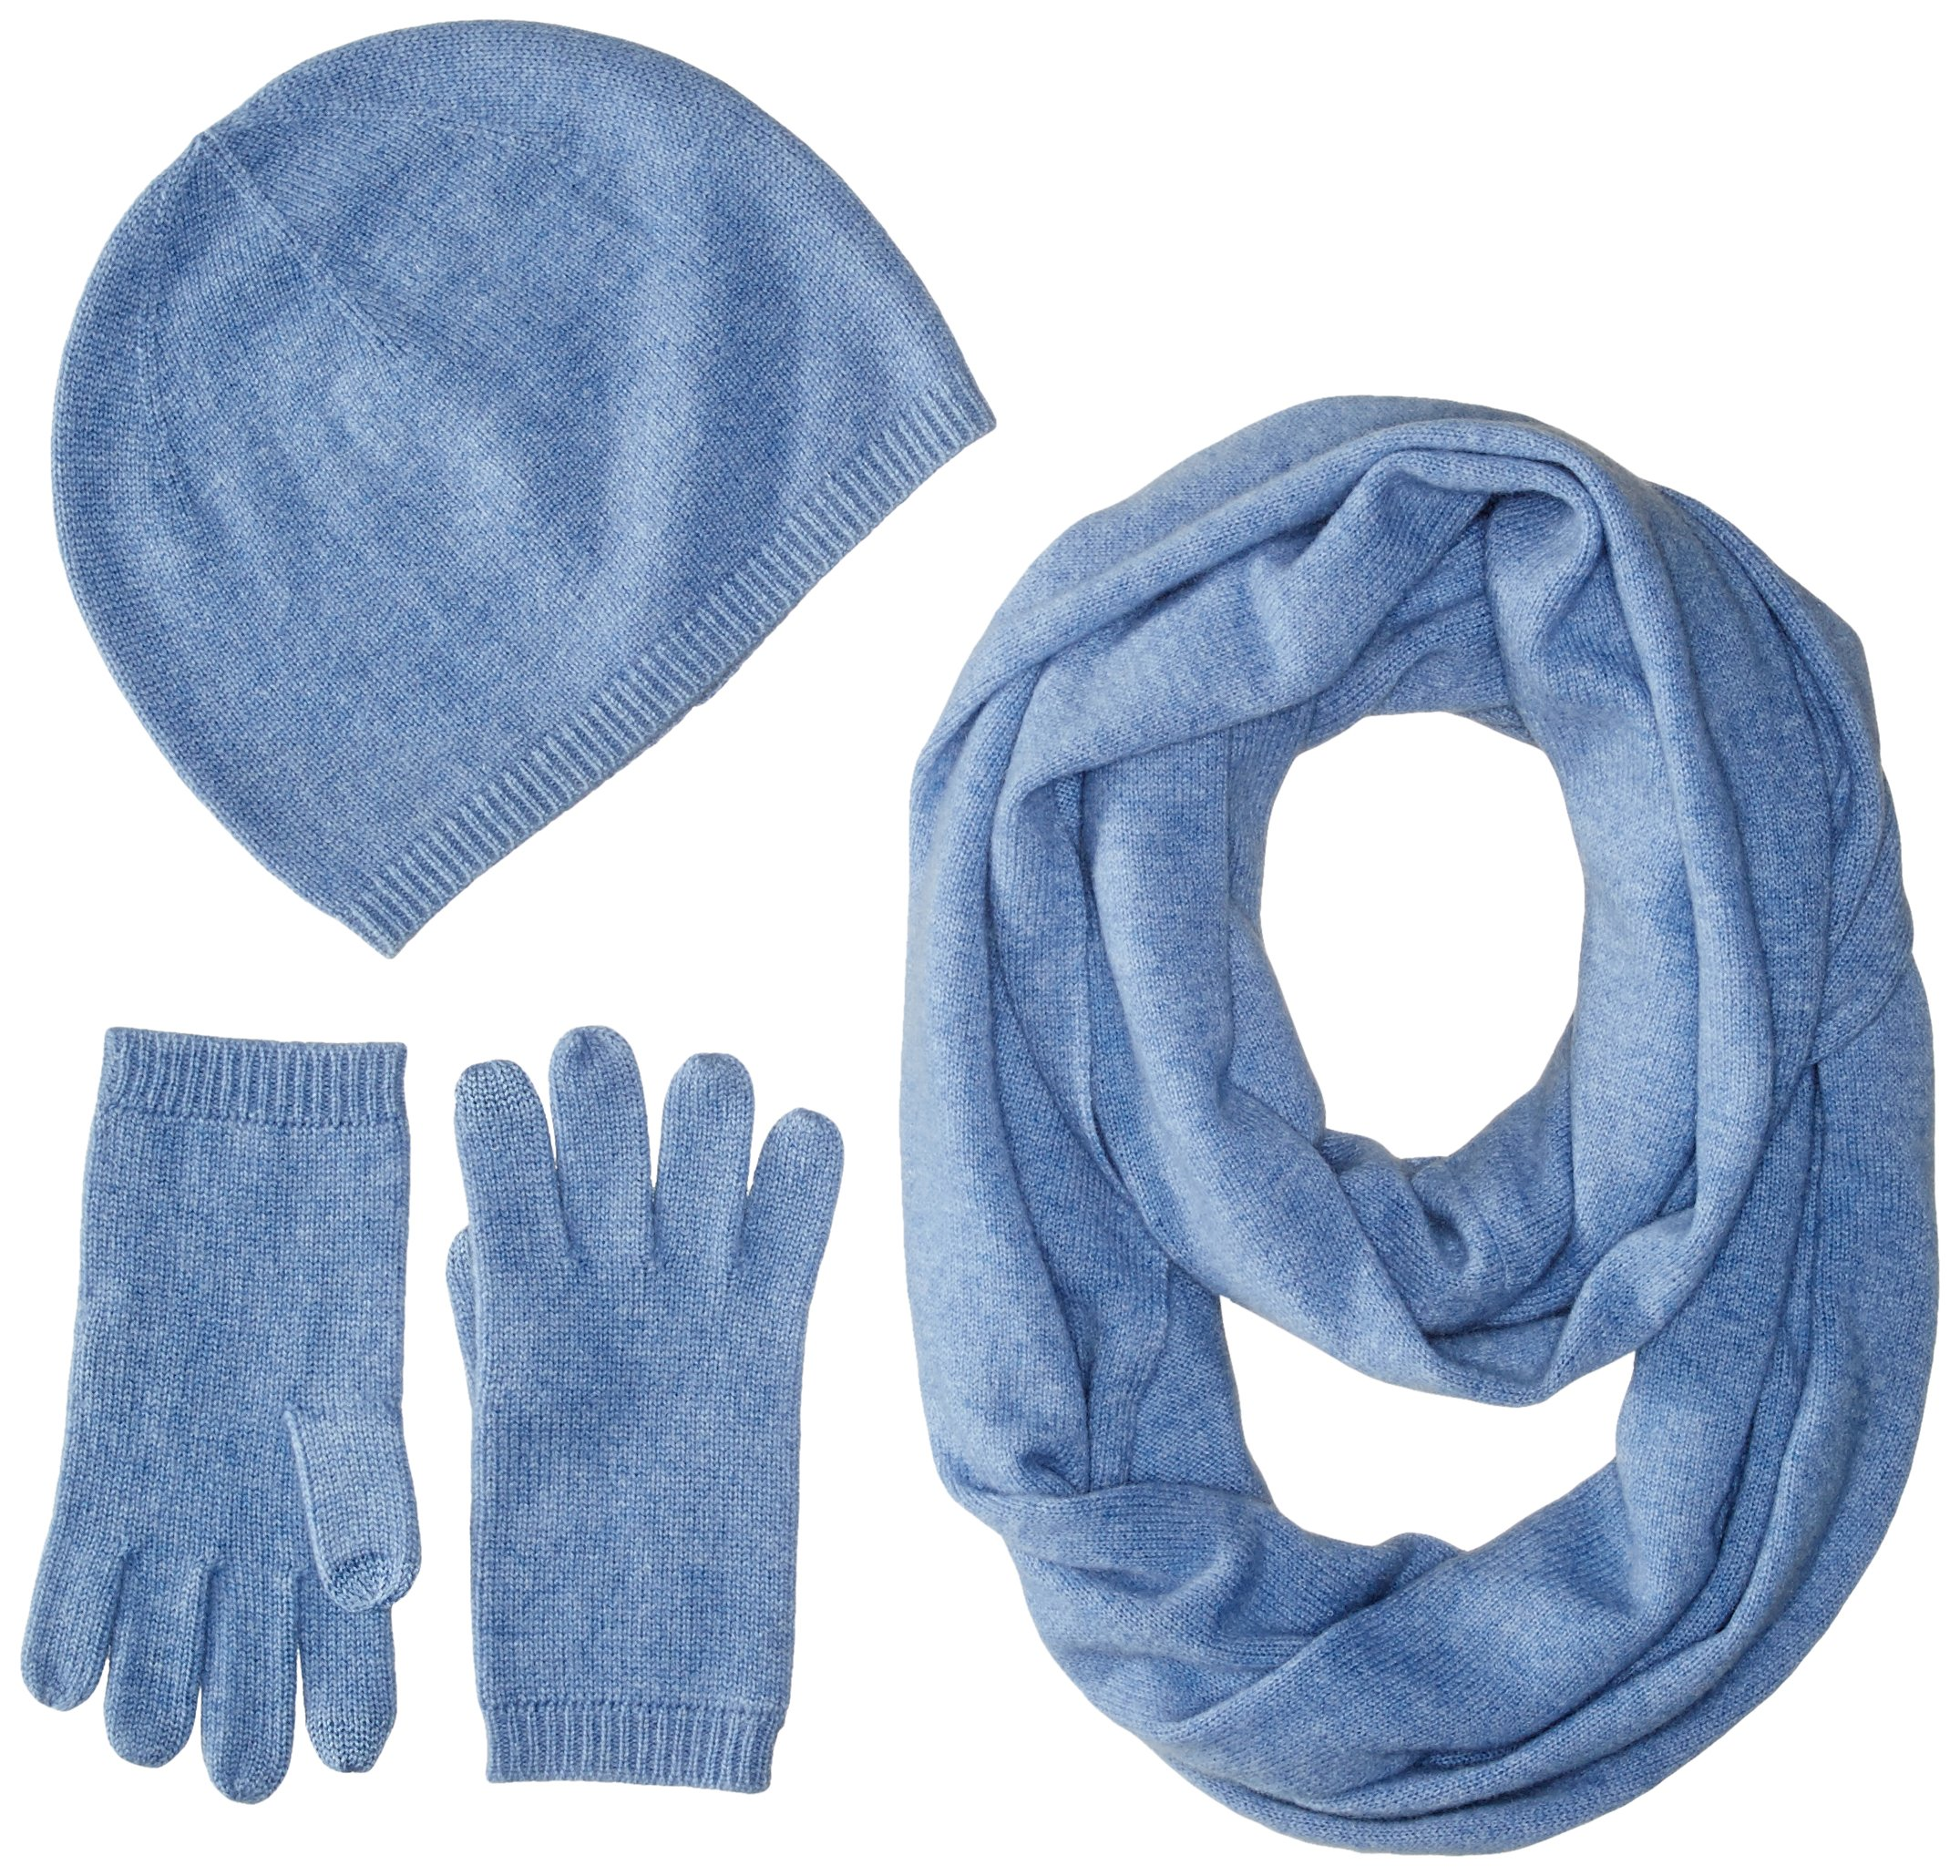 Sofia Cashmere Women's Gift Box Set - Hat, Smartphone Gloves, and Infinity Scarf, dusty blue, ONE